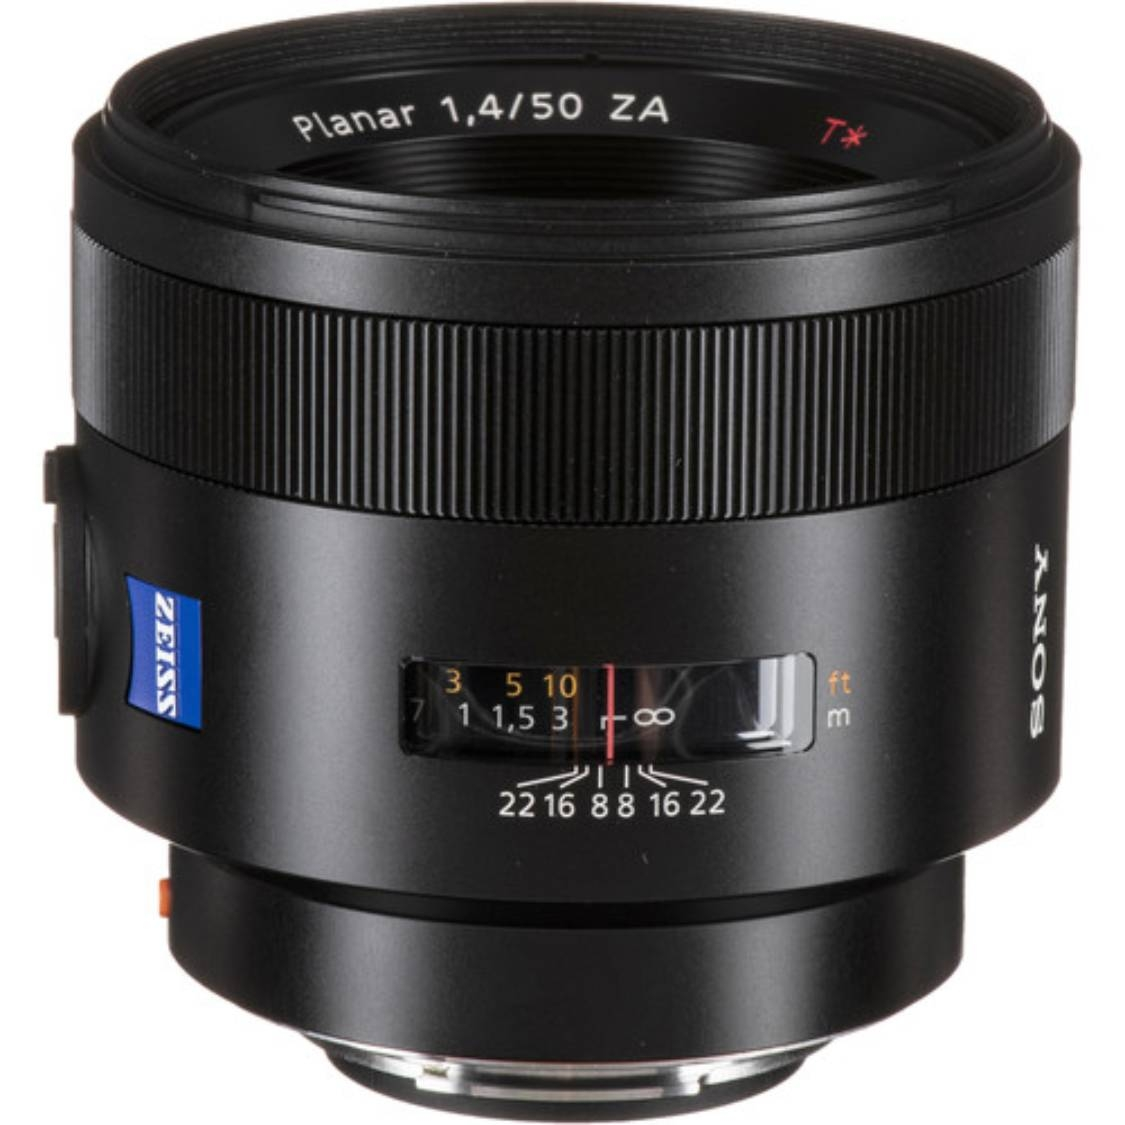 Sony Planar T* 50mm f/1.4 ZA SSM Lens - Open Box